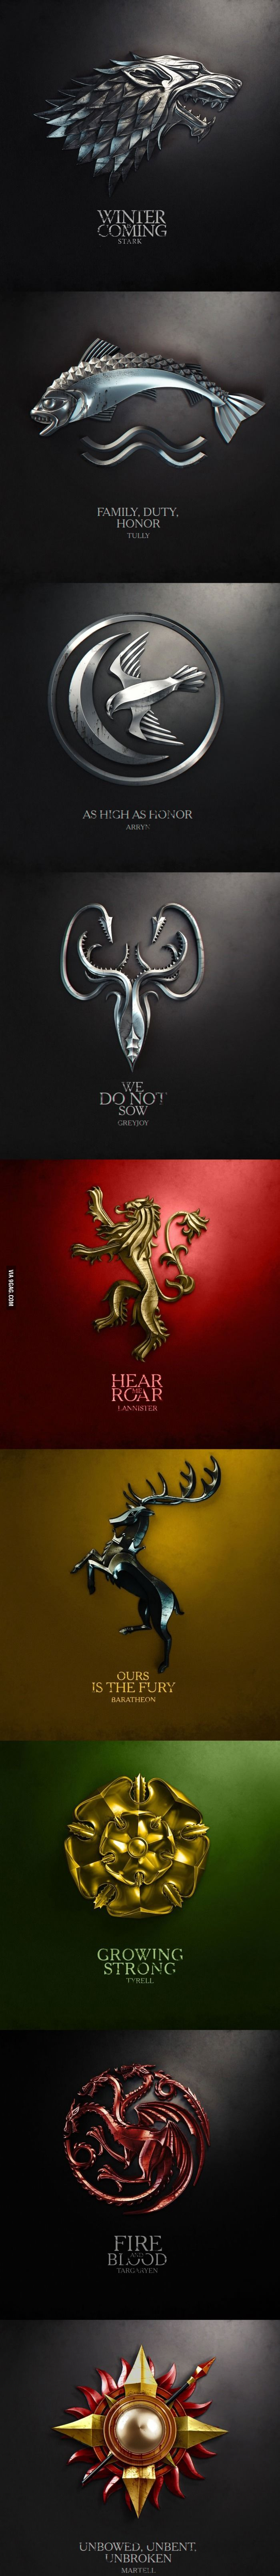 A song of ice and fire House sigils and mottos- HOUSE MARTELL WOOP WOPPP